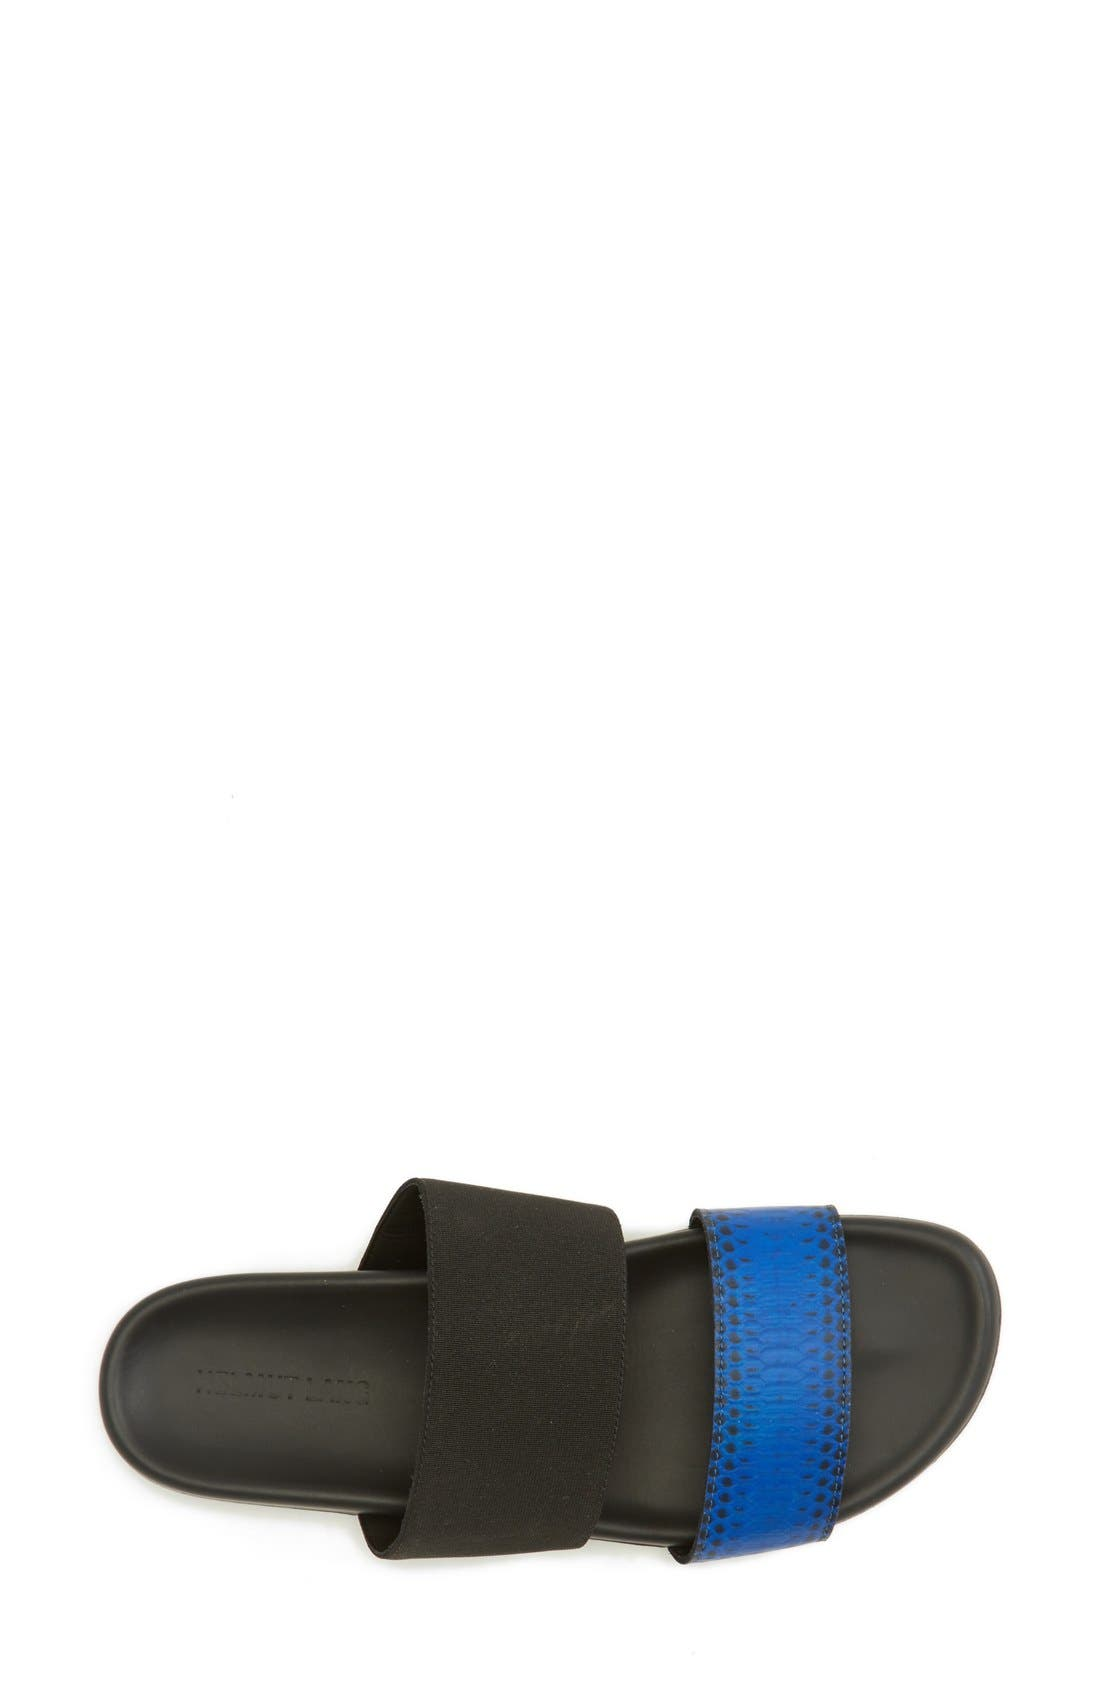 Alternate Image 4  - Helmut Lang 'Beach' Genuine Snakeskin Slide Sandal (Women)